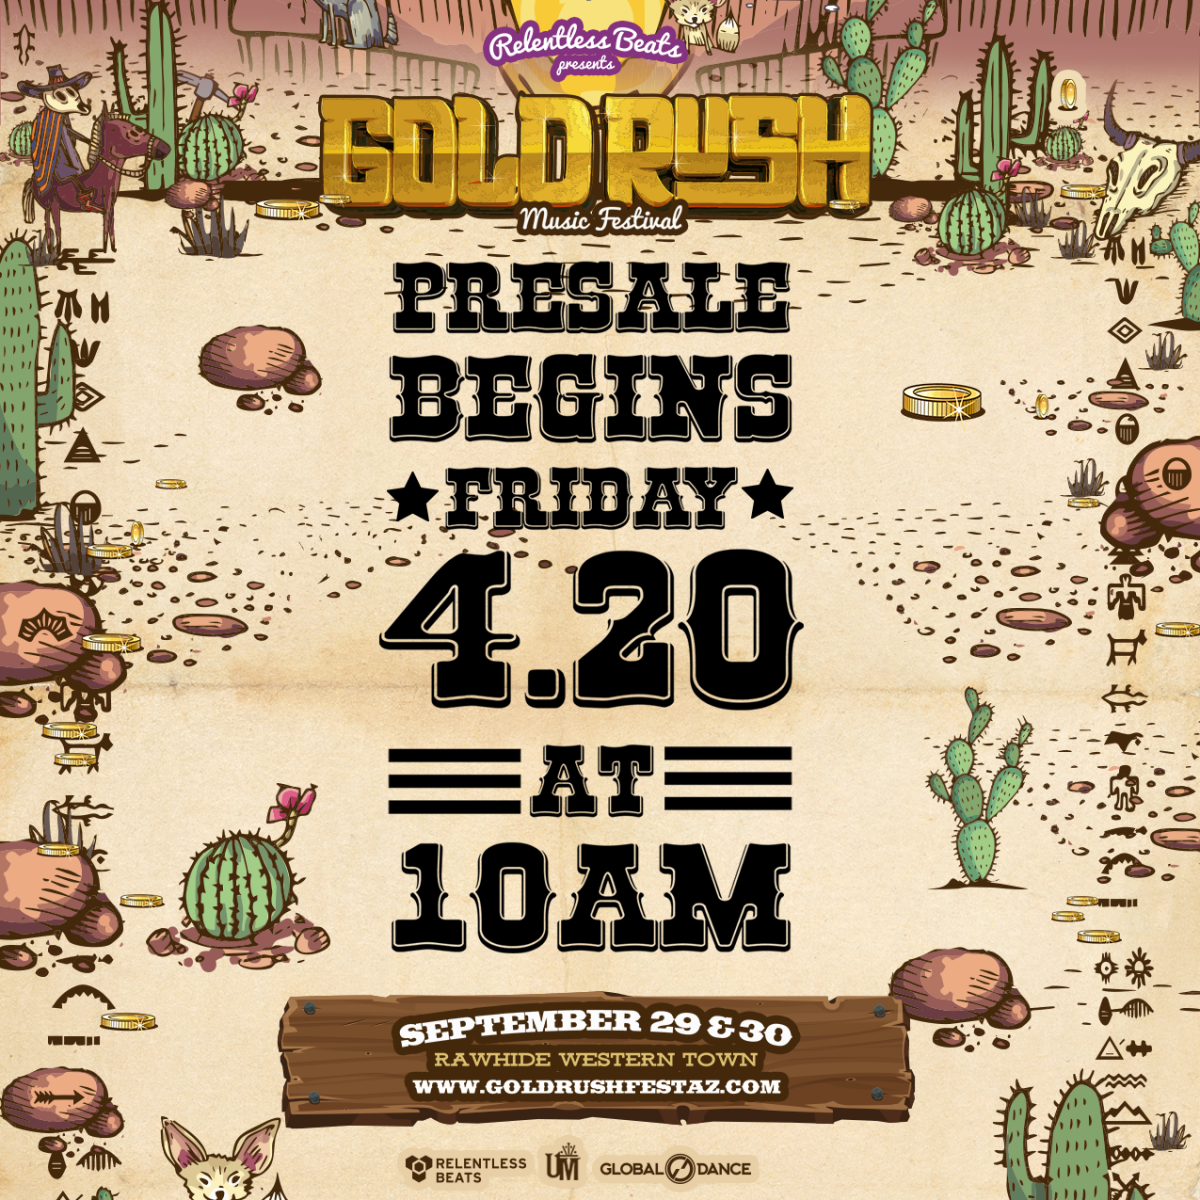 Relentless Beats Announces the Return of Goldrush Music Festival, with New Dates – this September 29 & 30